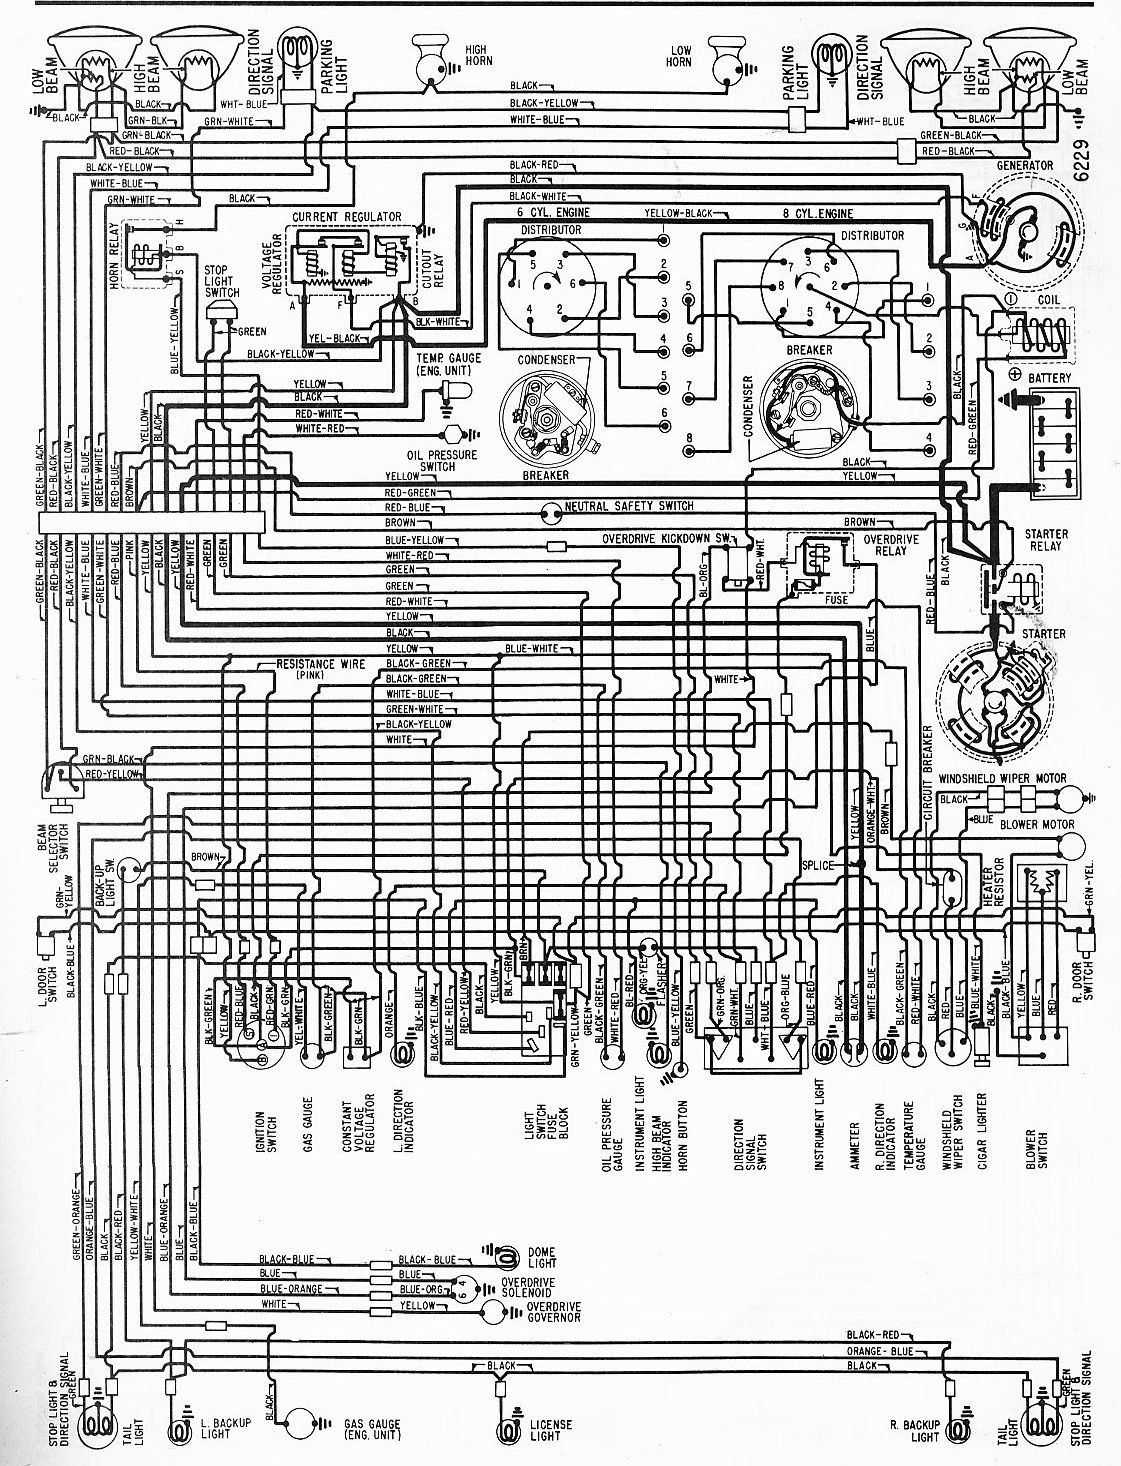 1970 Chevy C10 Fuse Box Diagram Wiring Diagram Portal